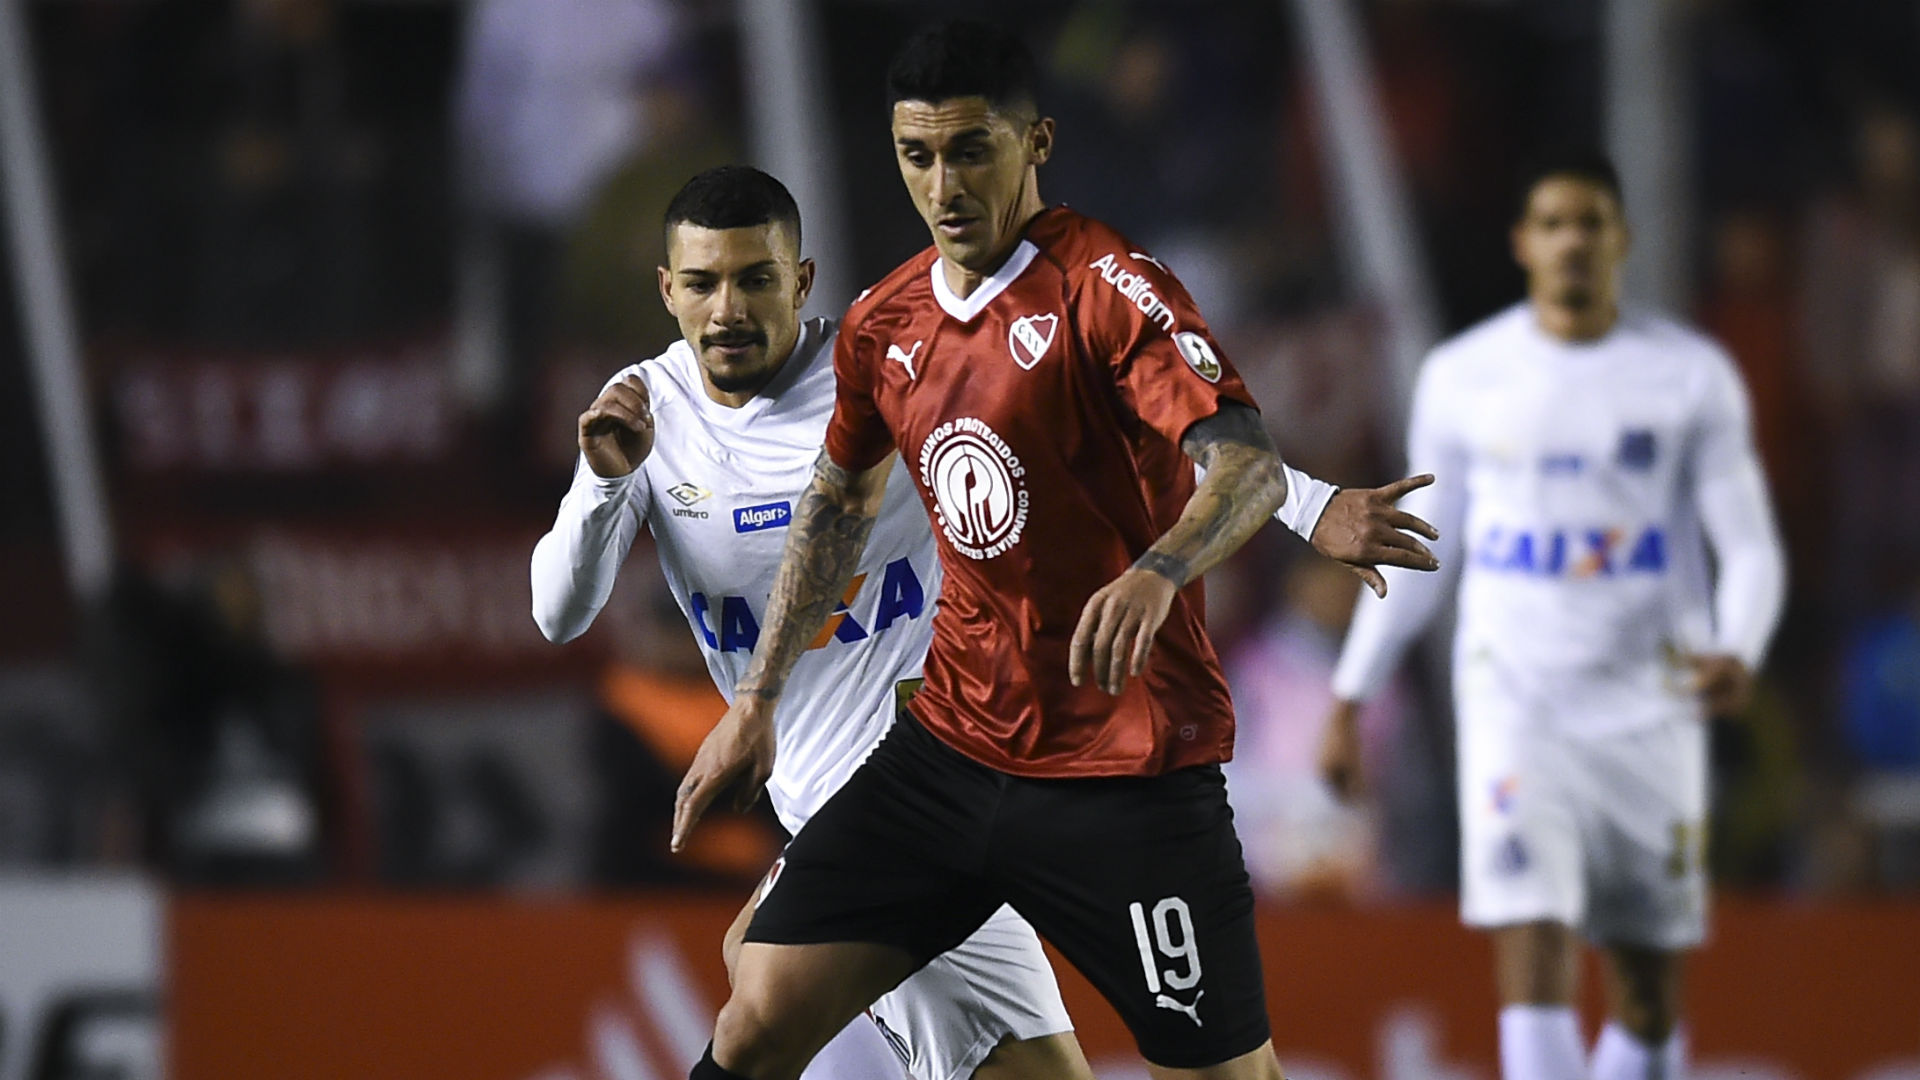 Independiente 0 Santos 0: Dogged defending preserves deadlock